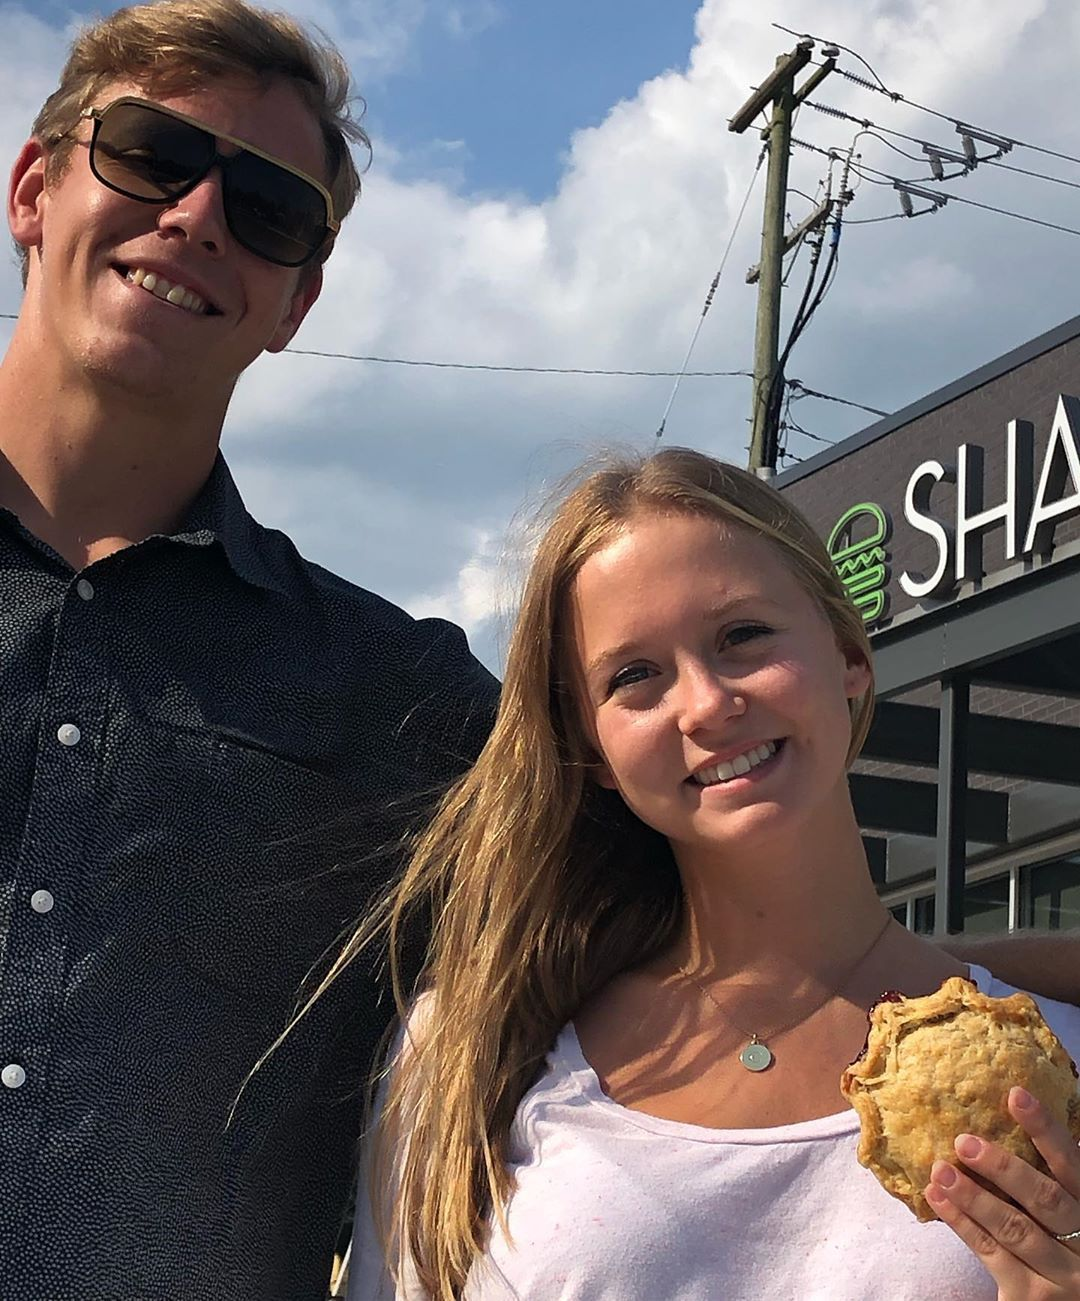 Hop over to shakeshack Virginia Beach and grab your Pie Oh My. amp;